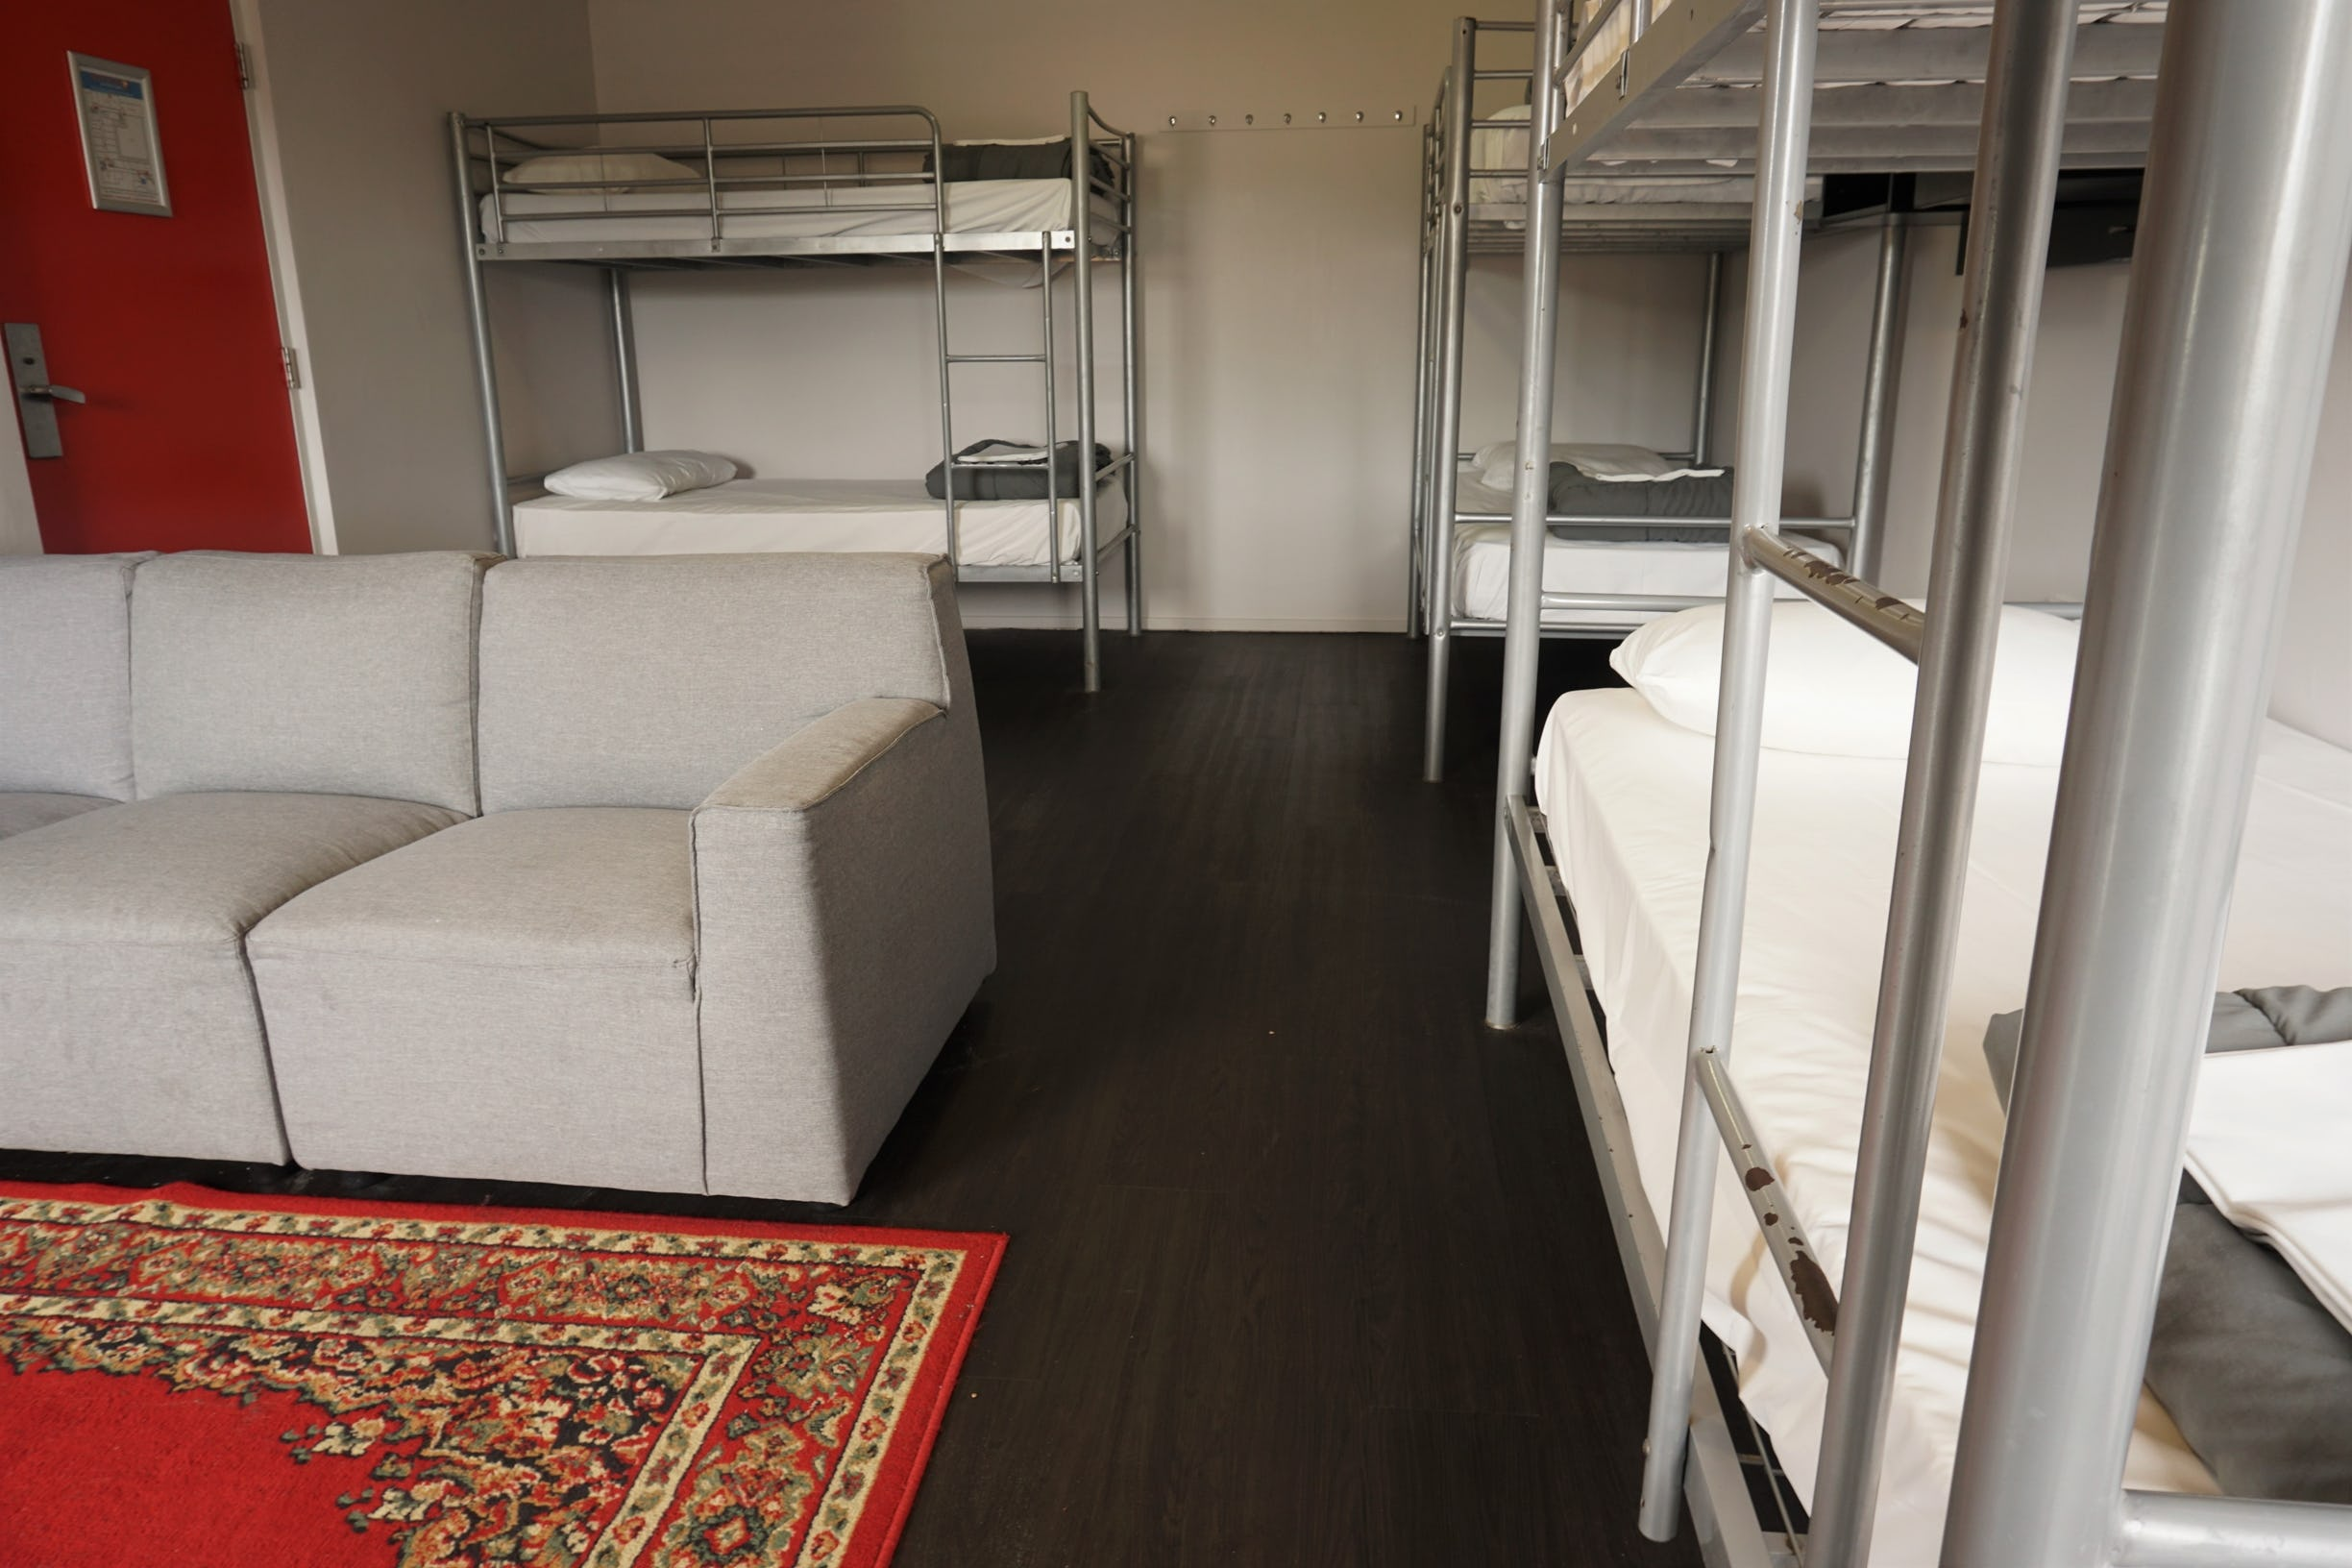 6 bed dorm at nomads hostel byron bay